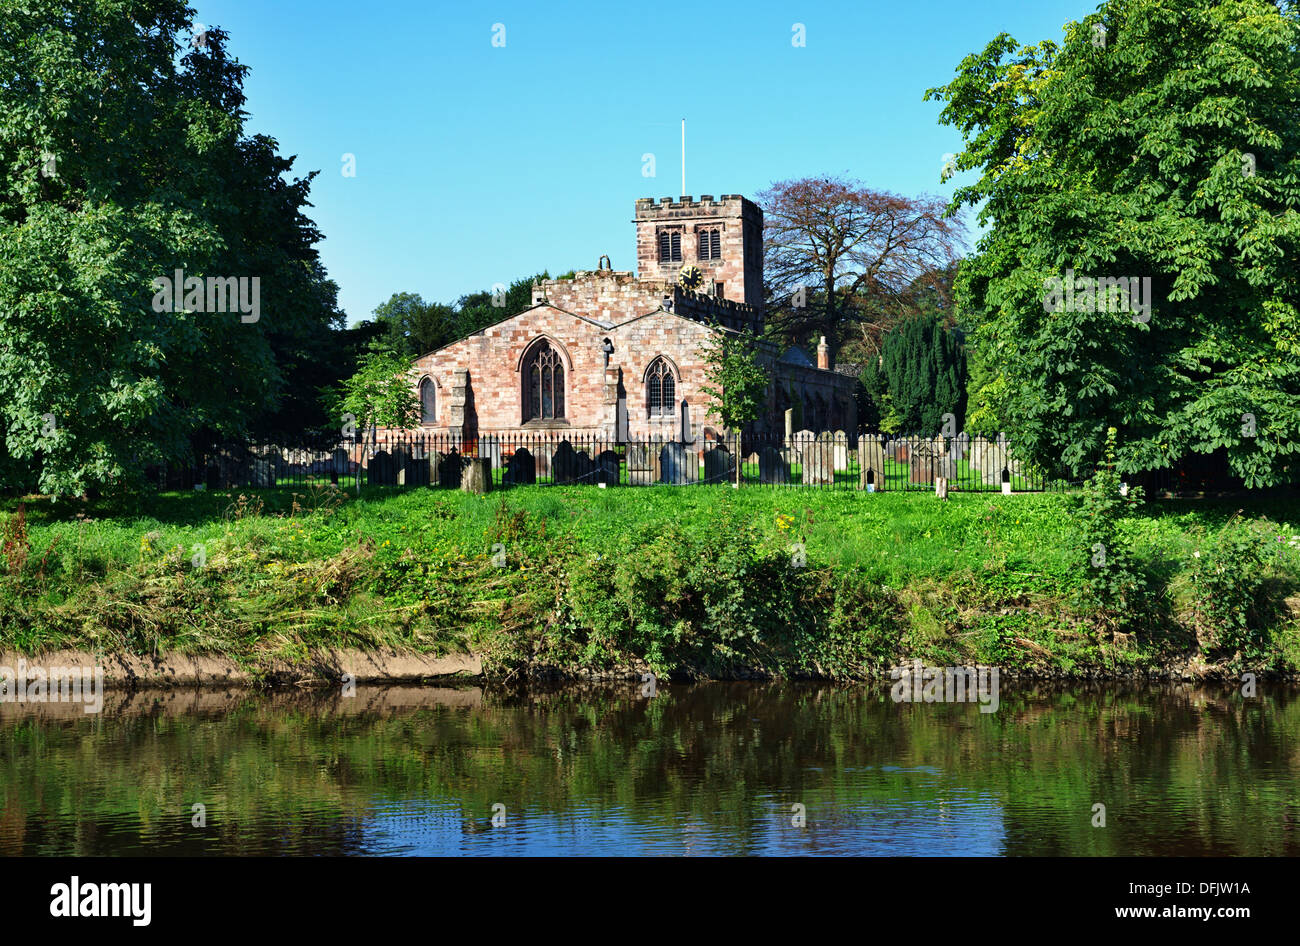 View of St Lawrence's Church in Appleby, Cumbria, on the banks of the river Eden - Stock Image